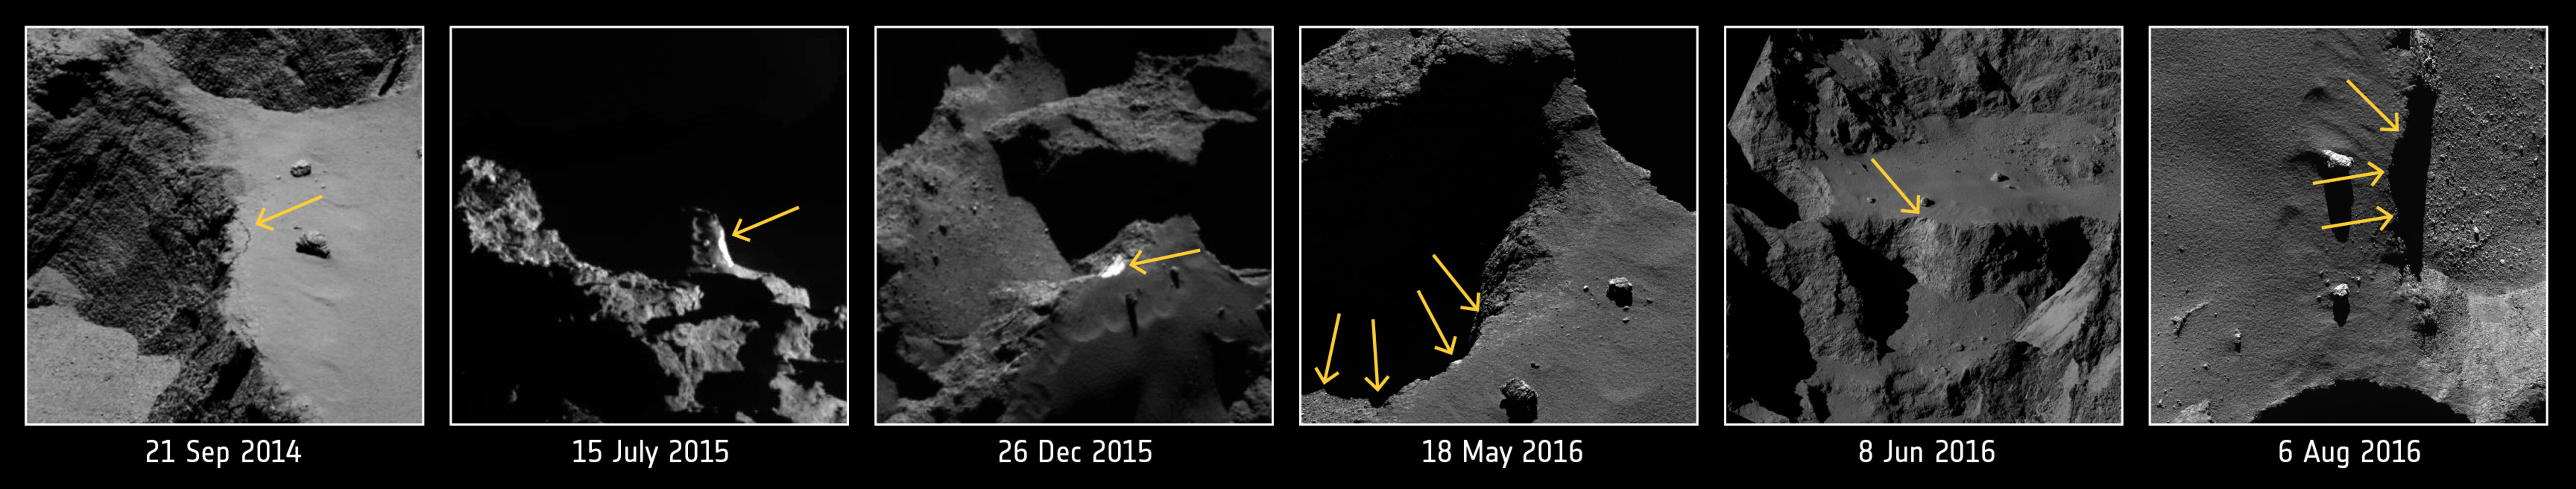 Evolution of a comet cliff collapse